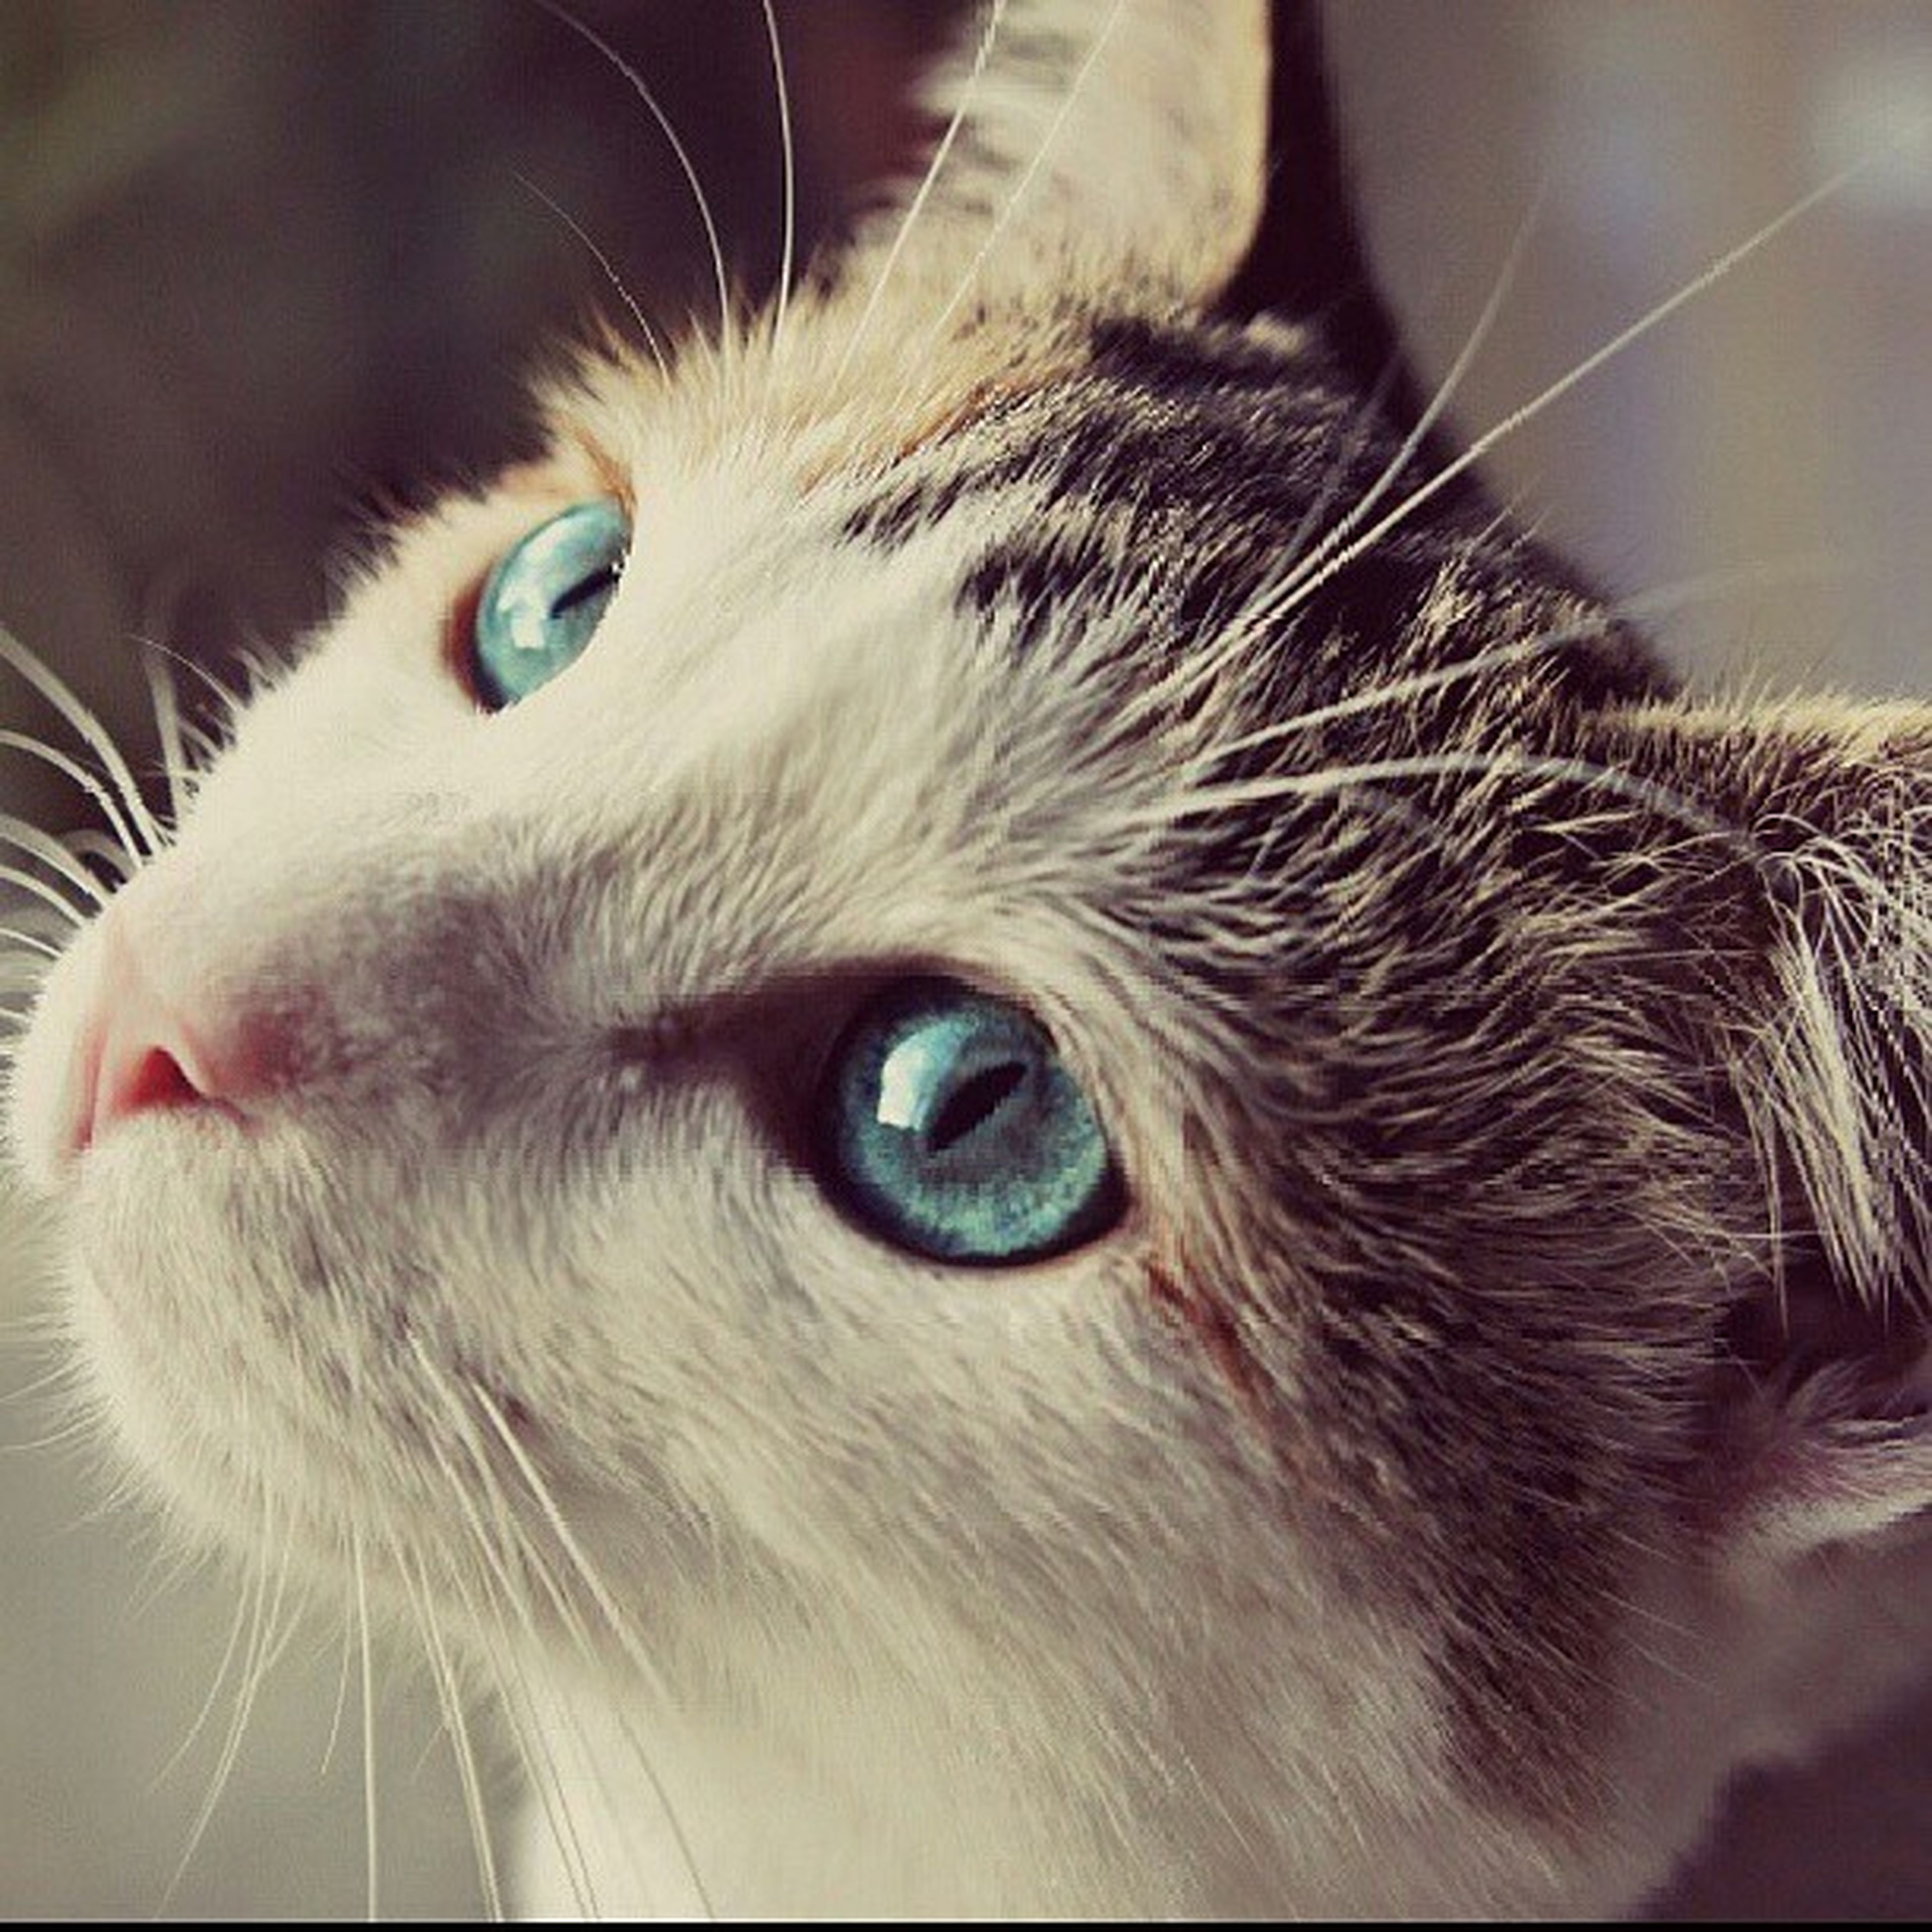 animal themes, one animal, domestic animals, pets, domestic cat, mammal, cat, feline, whisker, indoors, animal head, close-up, animal body part, animal eye, focus on foreground, looking away, portrait, alertness, snout